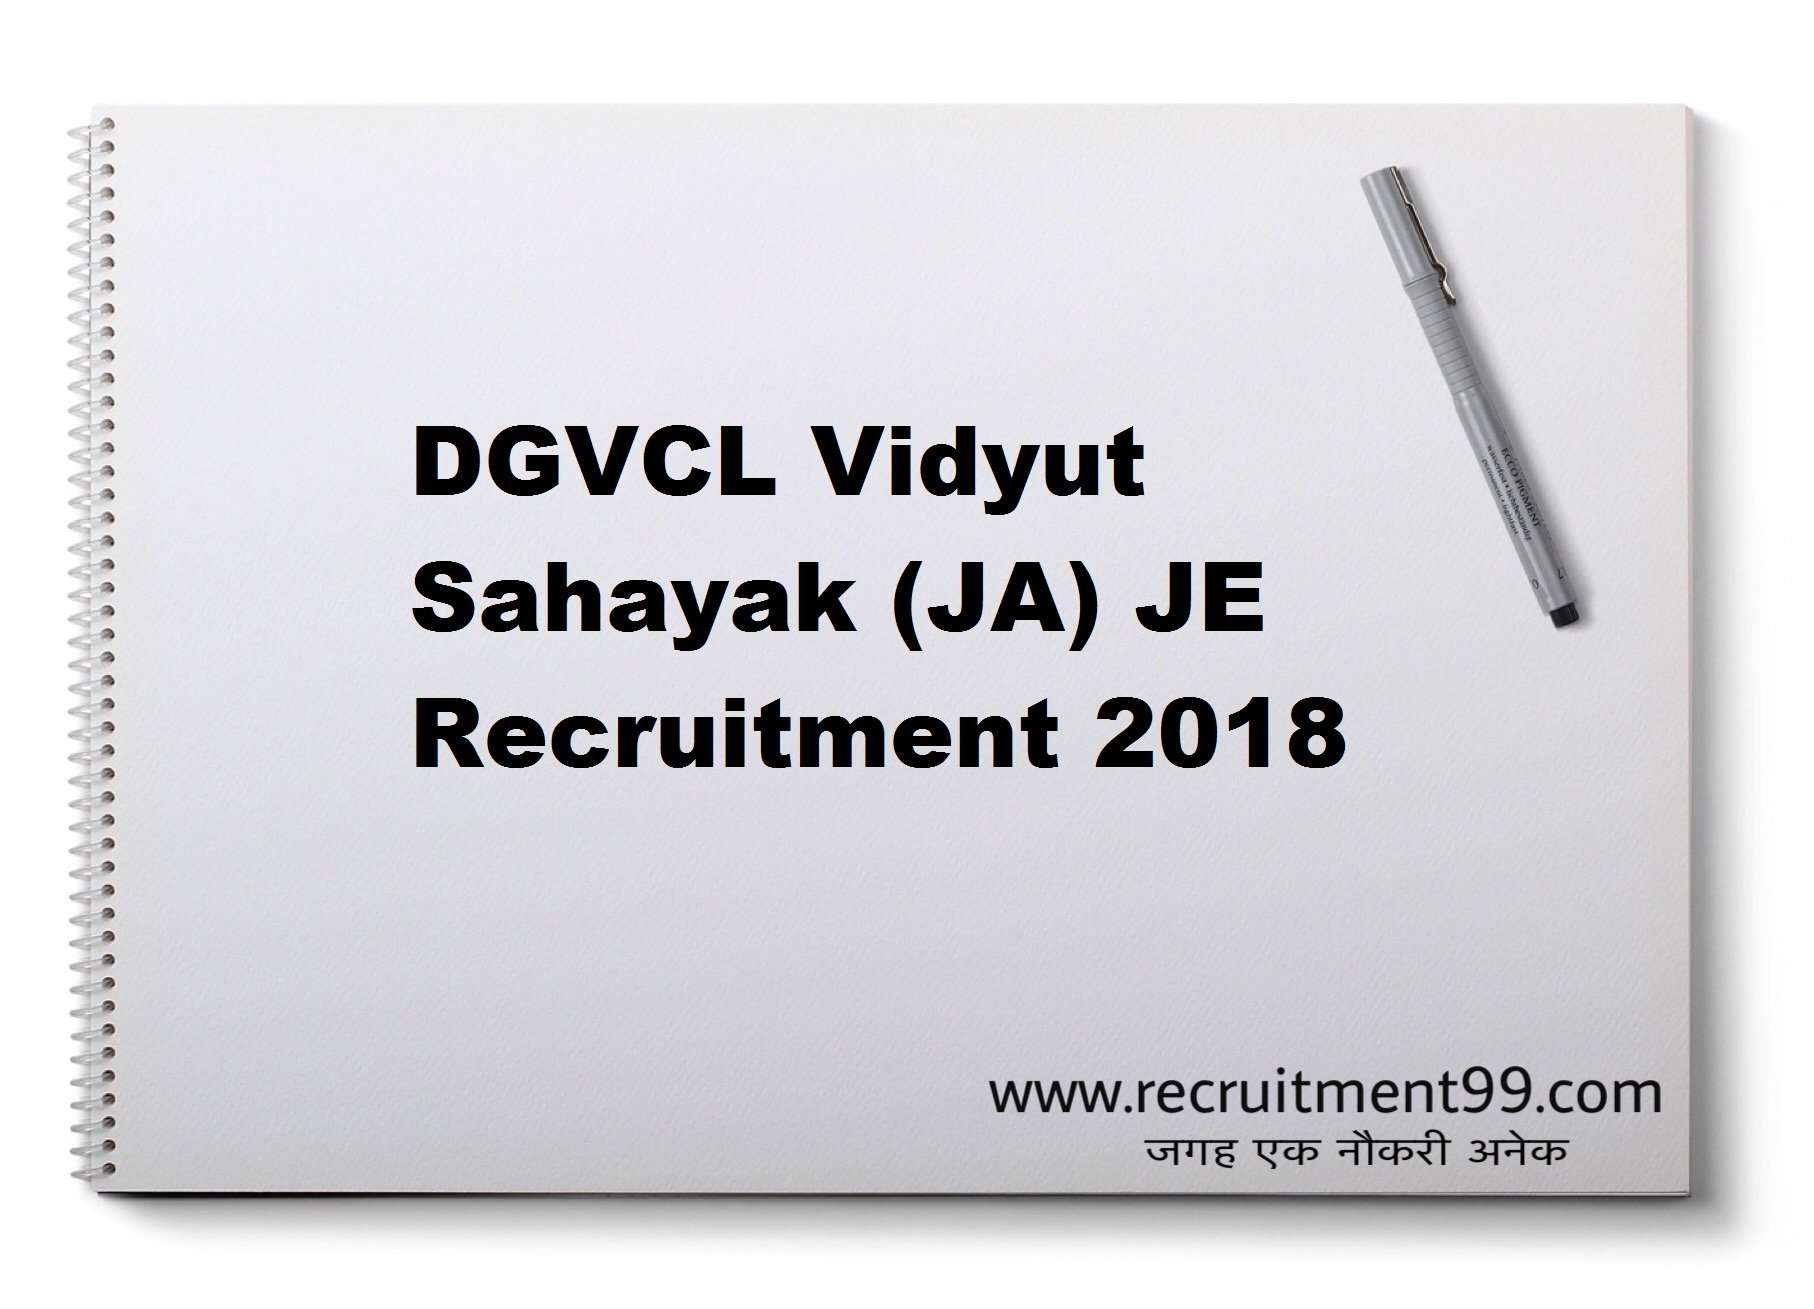 DGVCL Vidyut Sahayak (JA) JE Recruitment Admit Card Result 2018